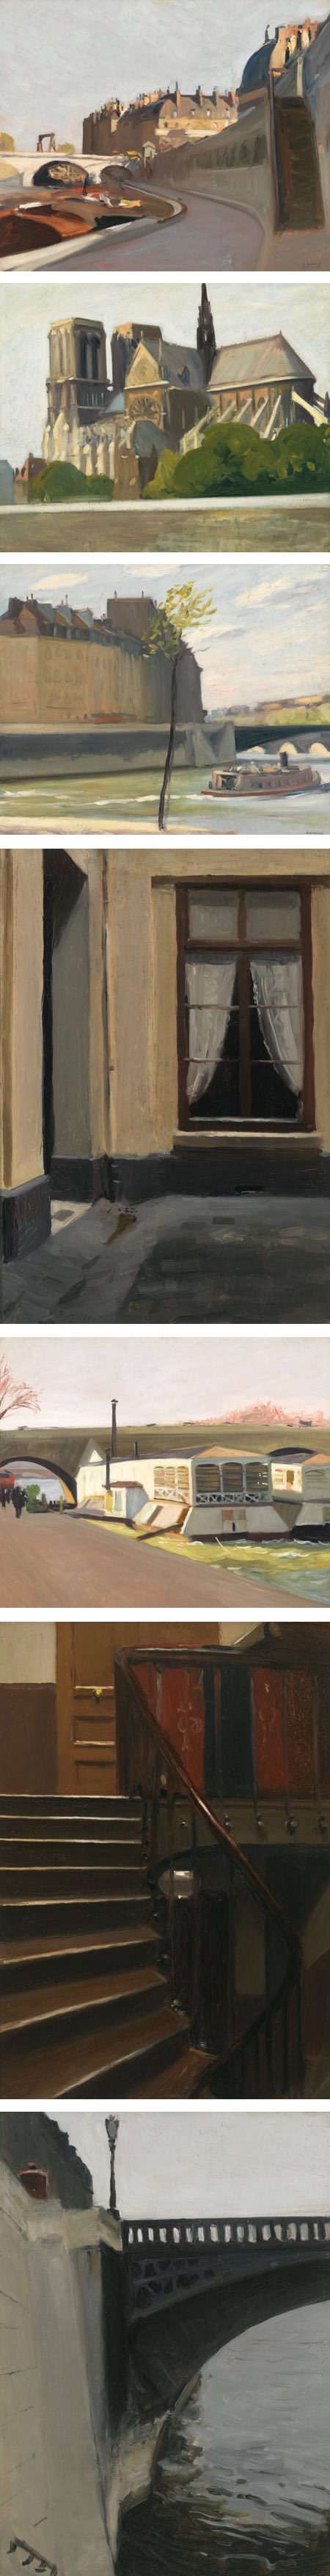 Hopper in Paris. paintings